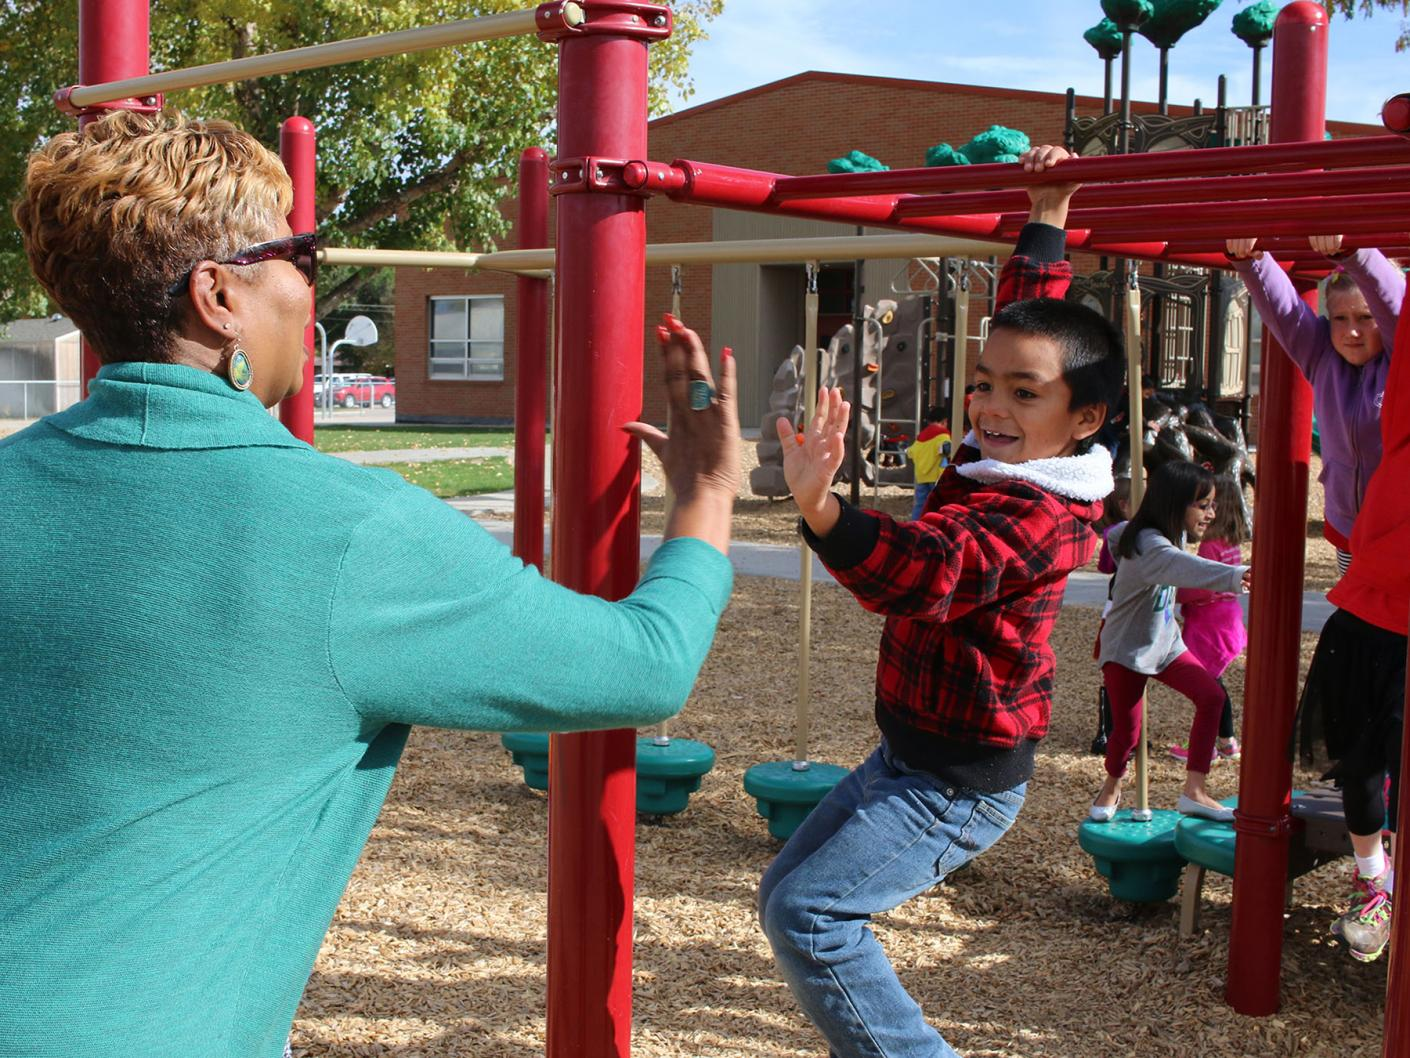 Karen high fives boy on playground